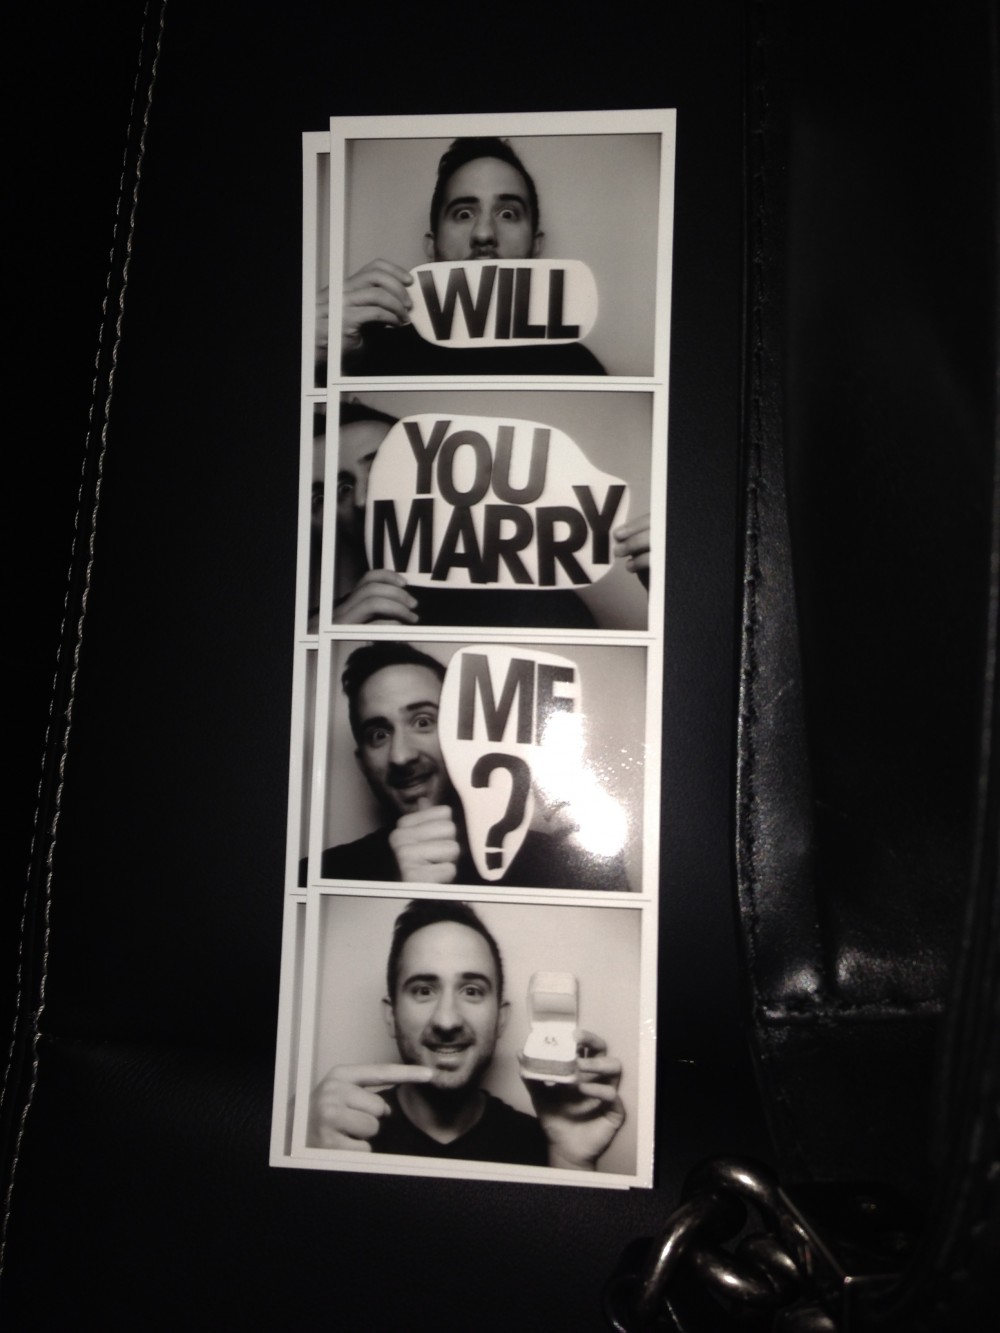 photo strip will you marry me